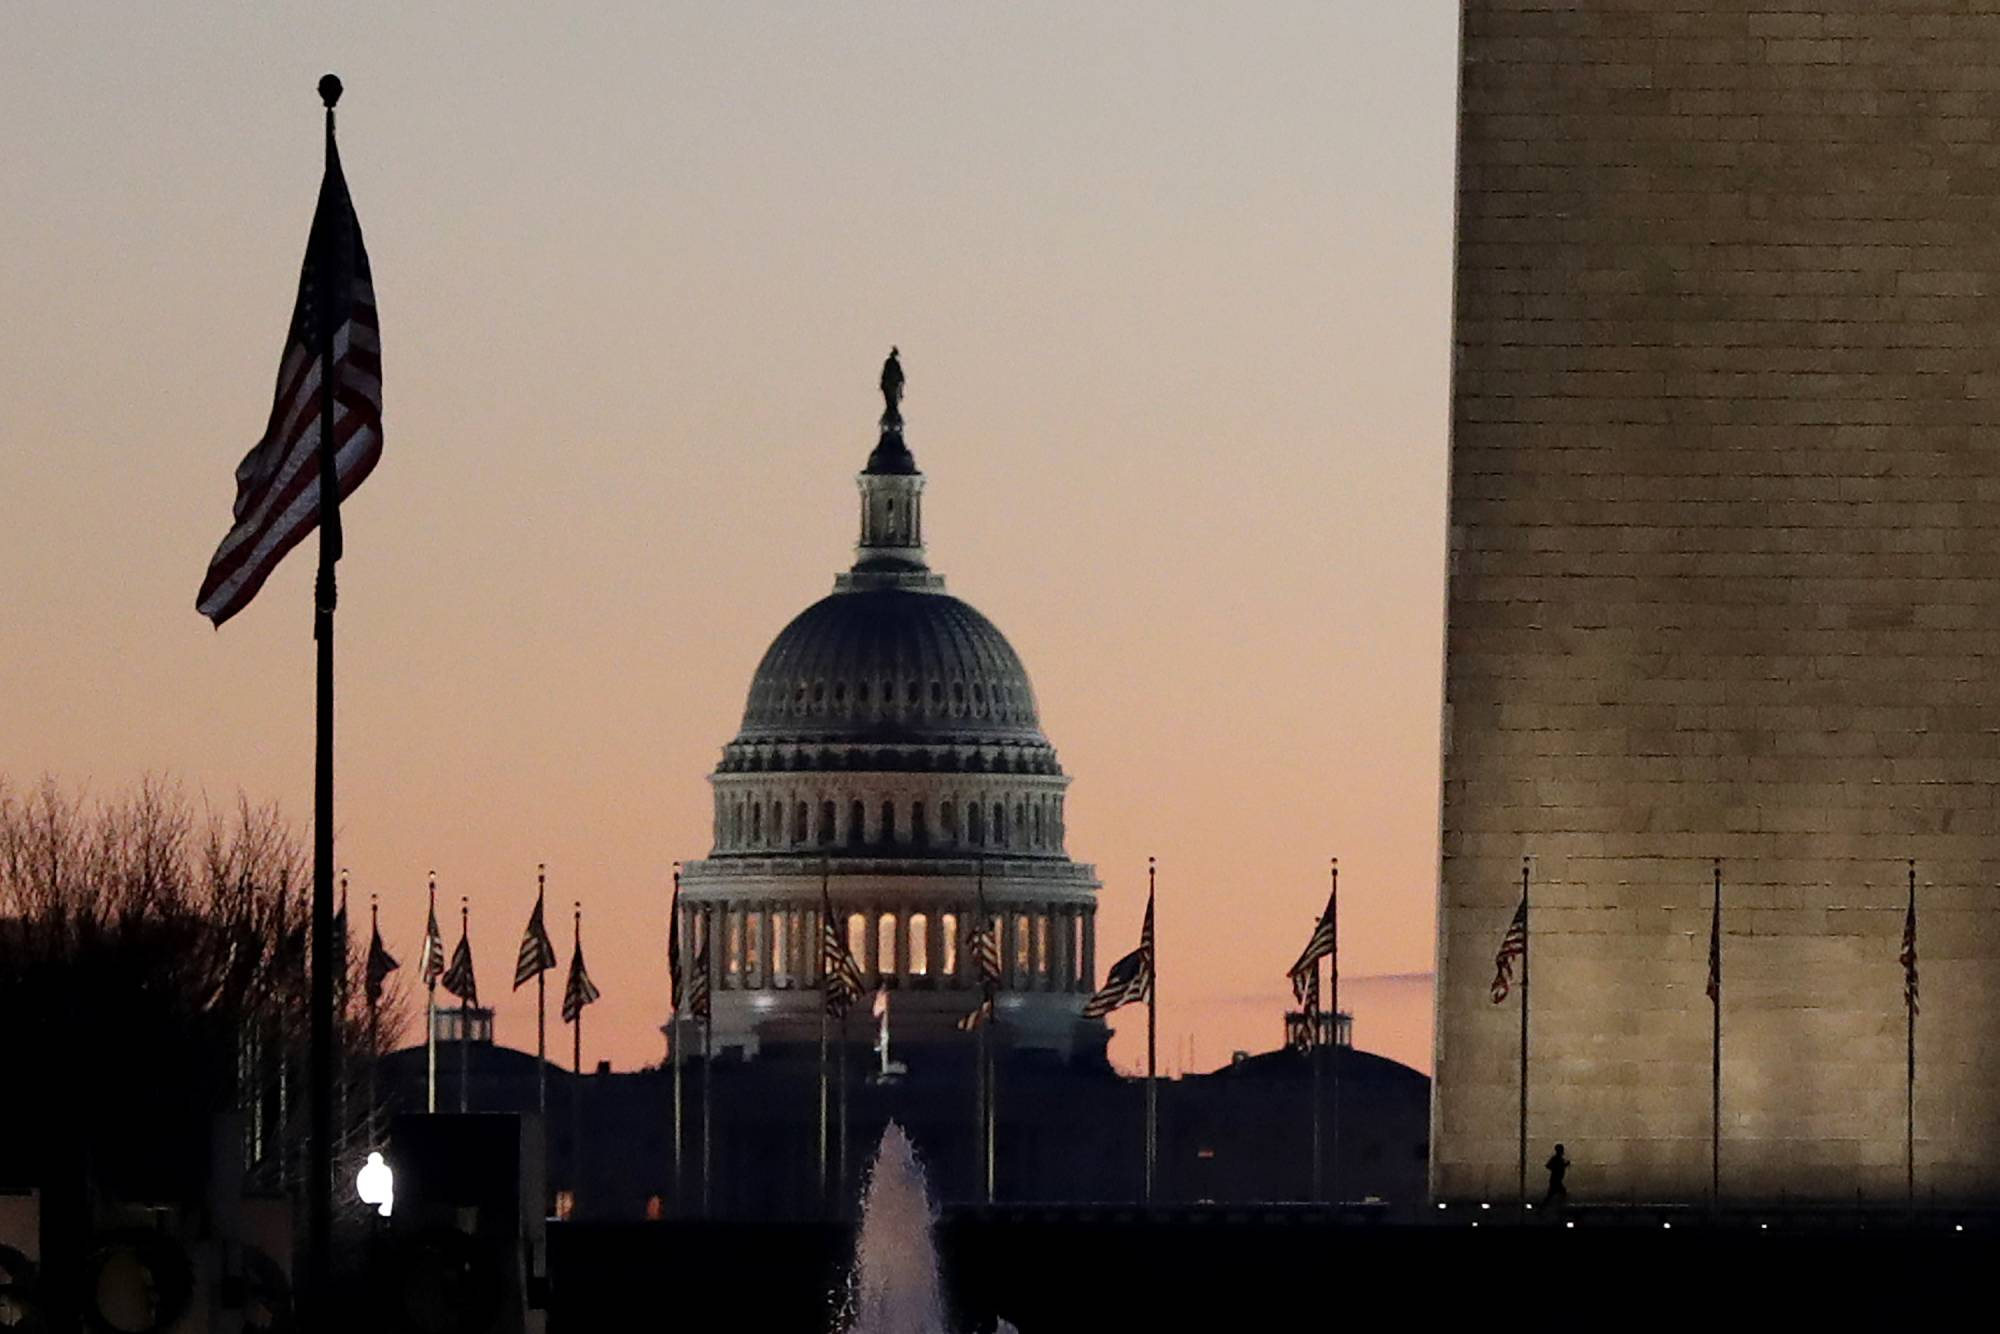 The U.S. Capitol building, center, and part of the Washington Monument, right, are seen at sunrise, Wednesday, Dec. 18, 2019, on Capitol Hill in Washington. President Donald Trump is on the cusp of being impeached by the House, with a historic debate set Wednesday on charges that he abused his power and obstructed Congress ahead of votes that will leave a defining mark on his tenure at the White House. (AP Photo/Julio Cortez)